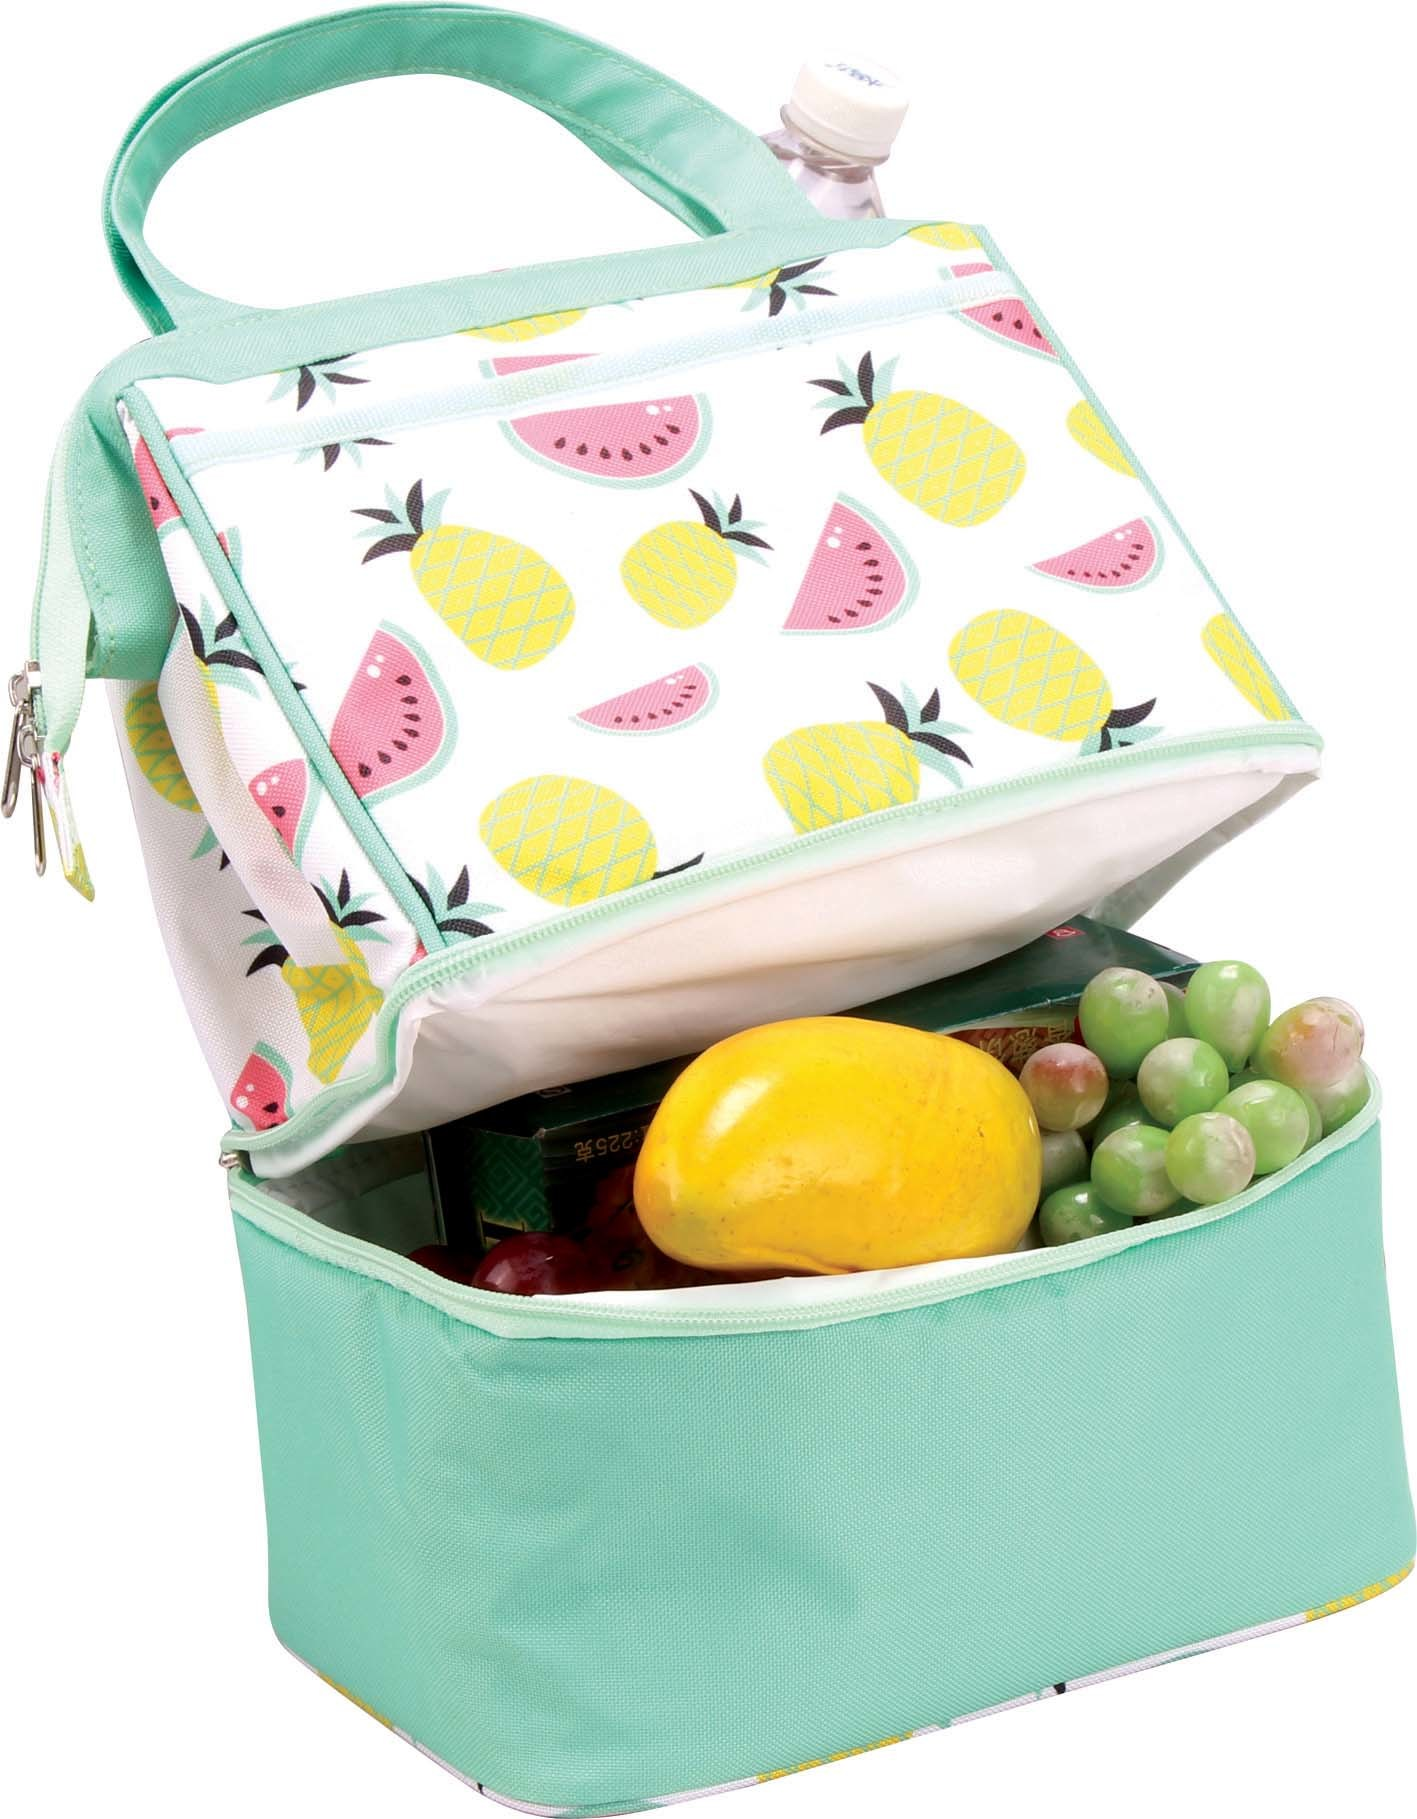 Cooler Bag Food Insulated Delivery Bag For Picnic Groceries Portable Folding 1PC